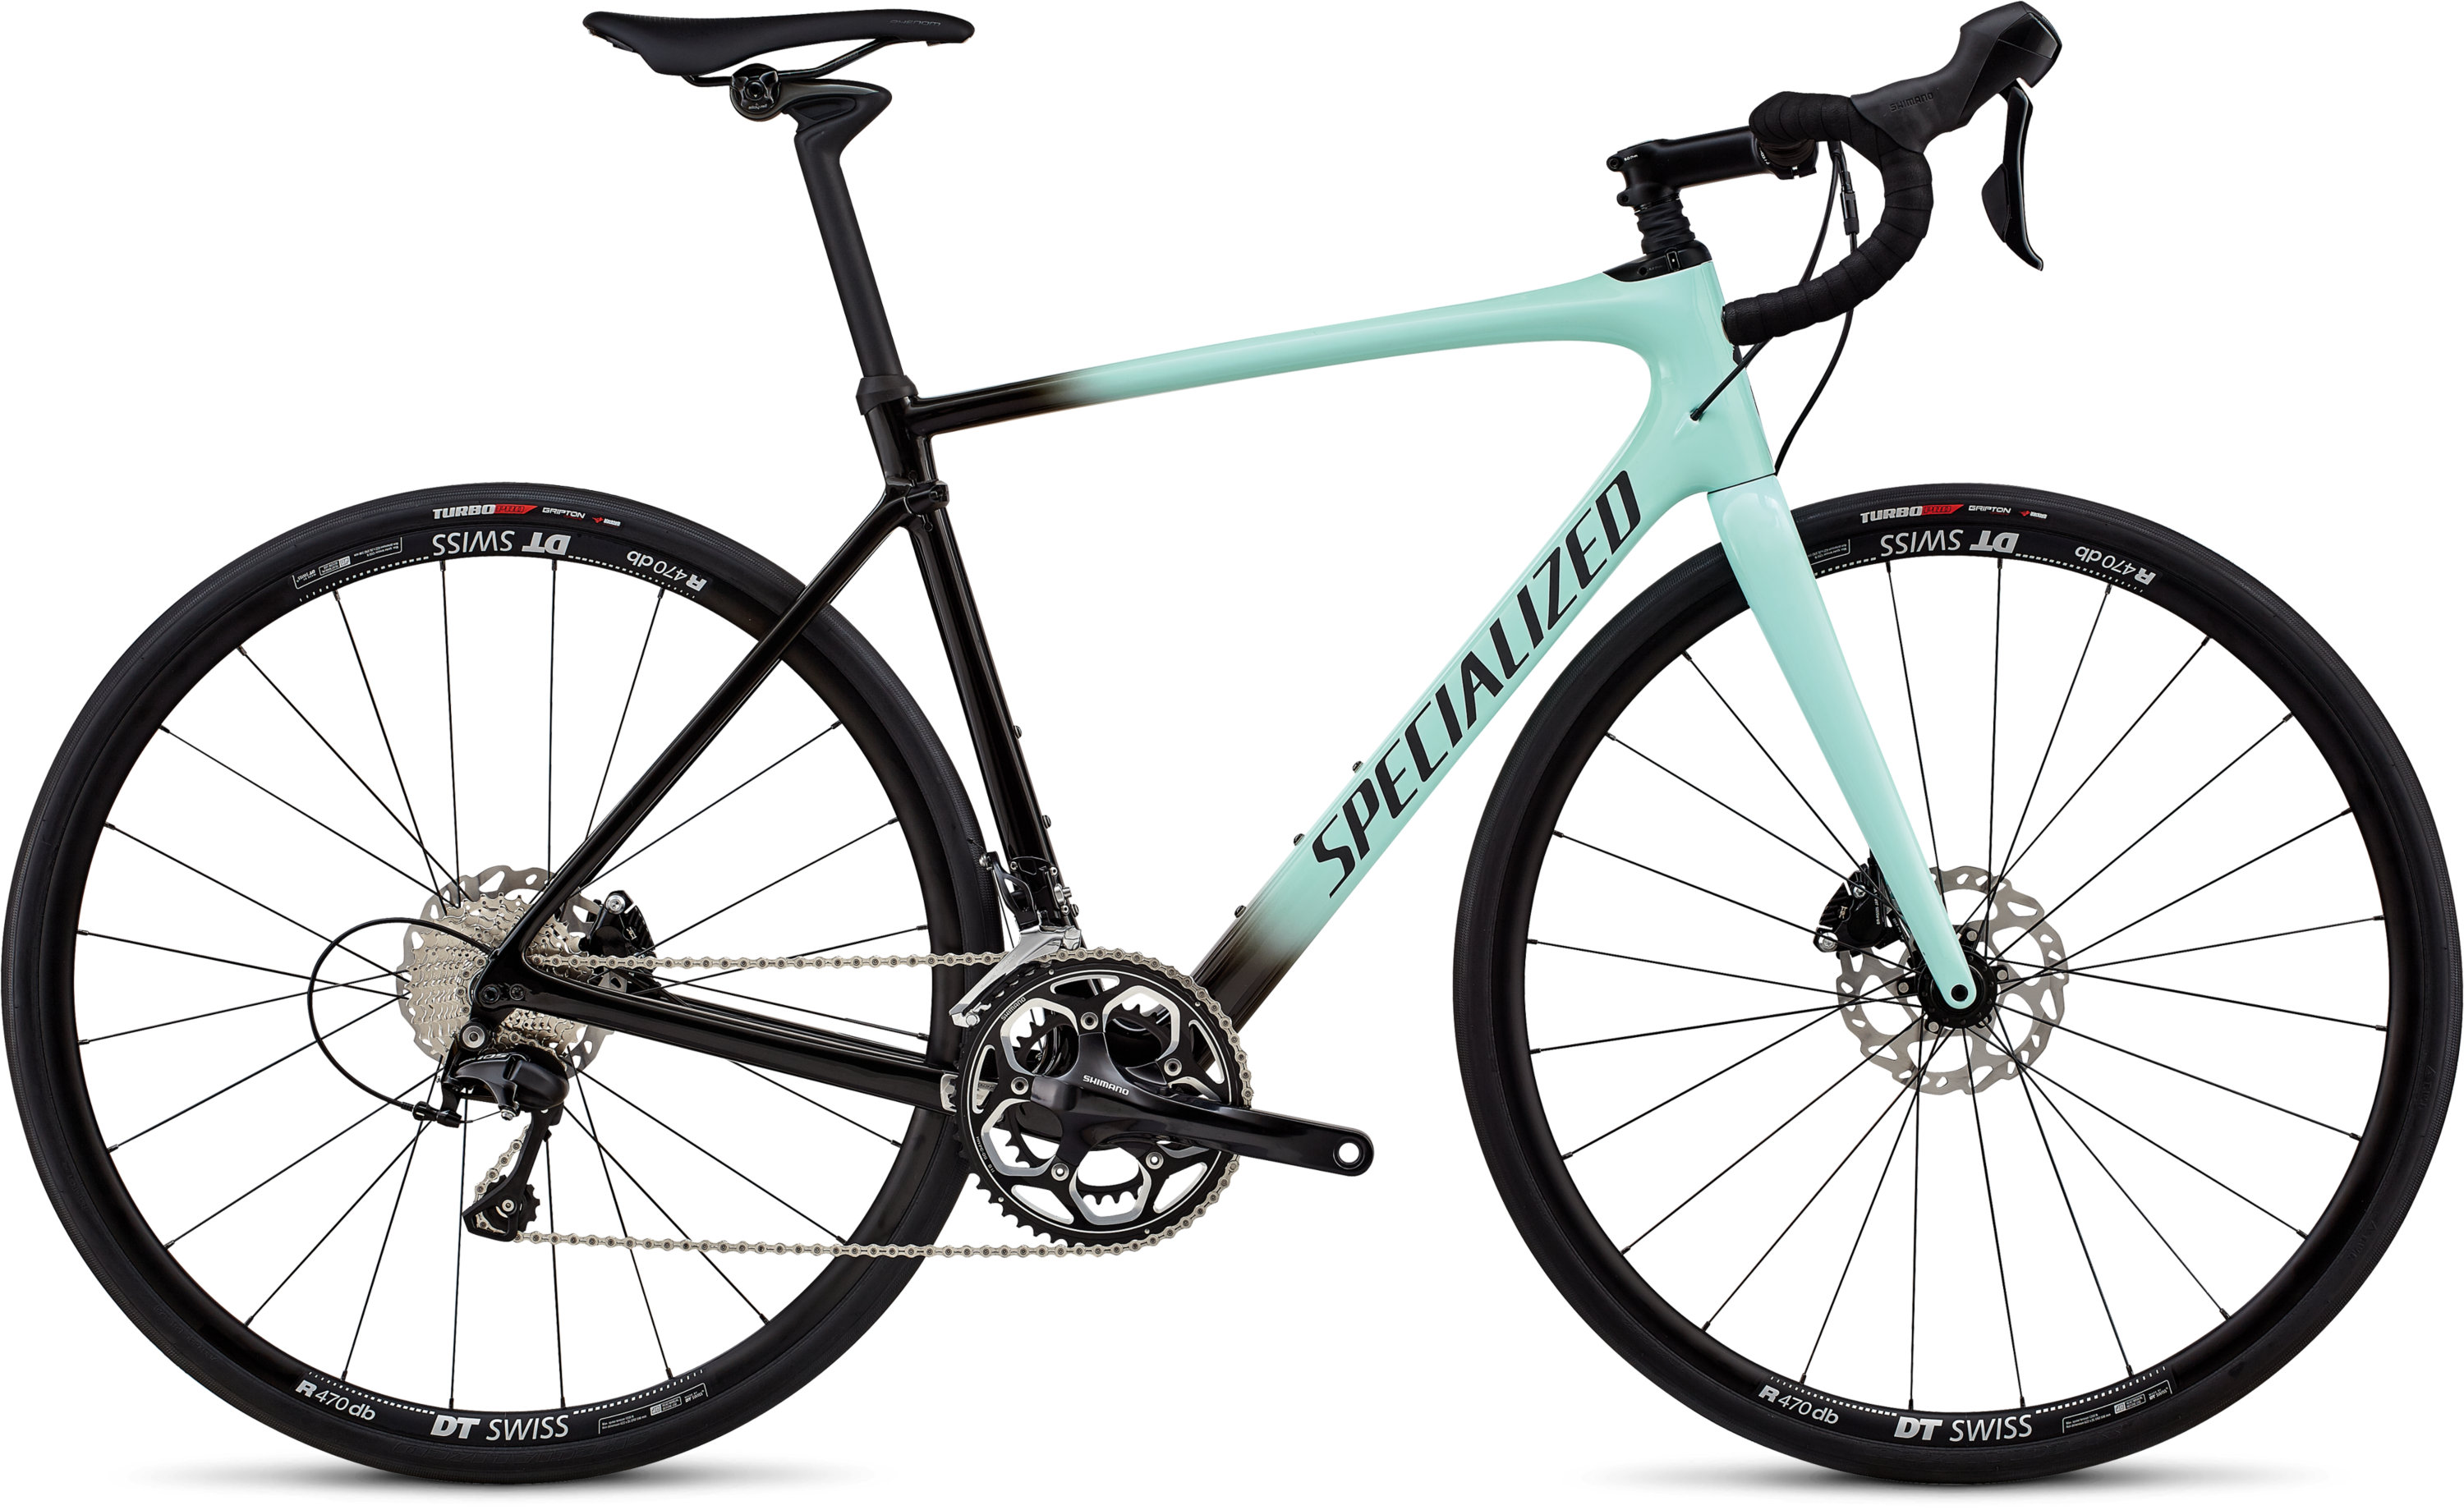 Point P Roubaix Roubaix Elite Specialized